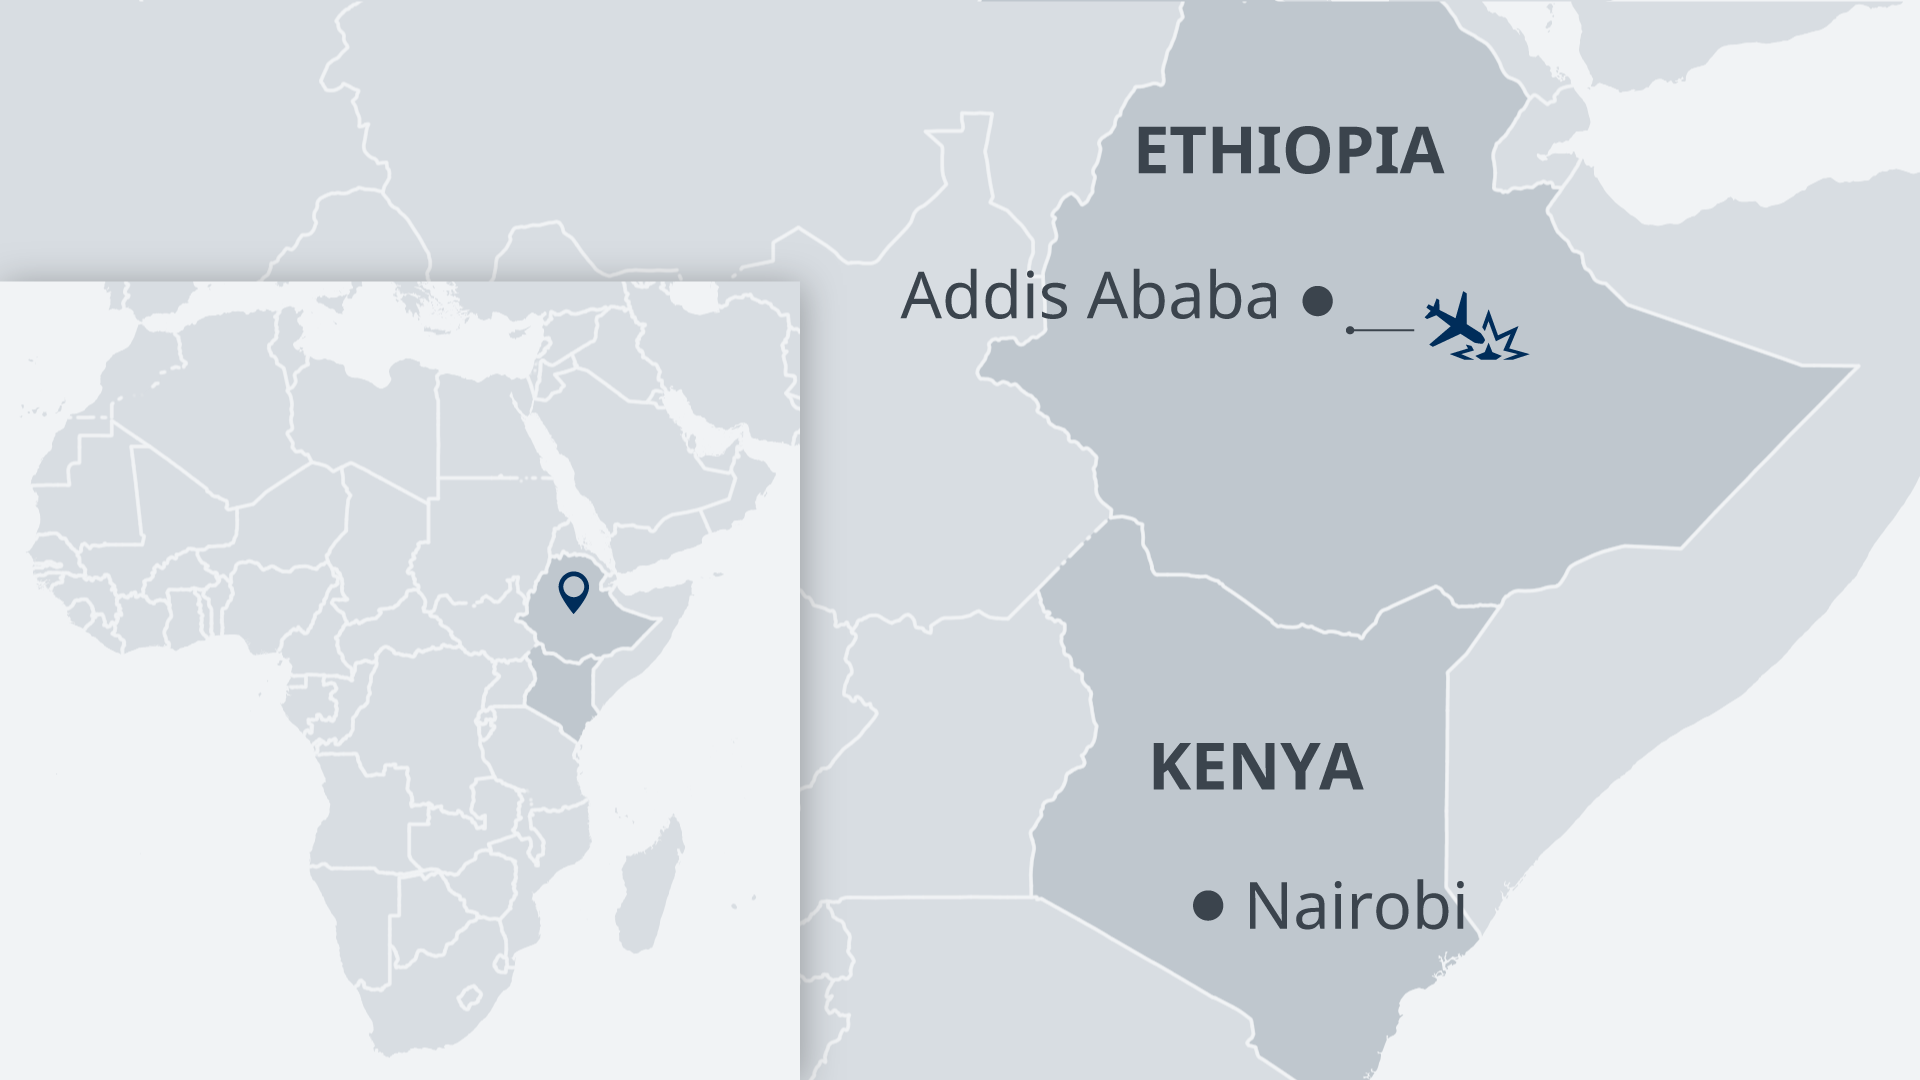 Map showing Addis Ababa, Nairobi and the location of the crash